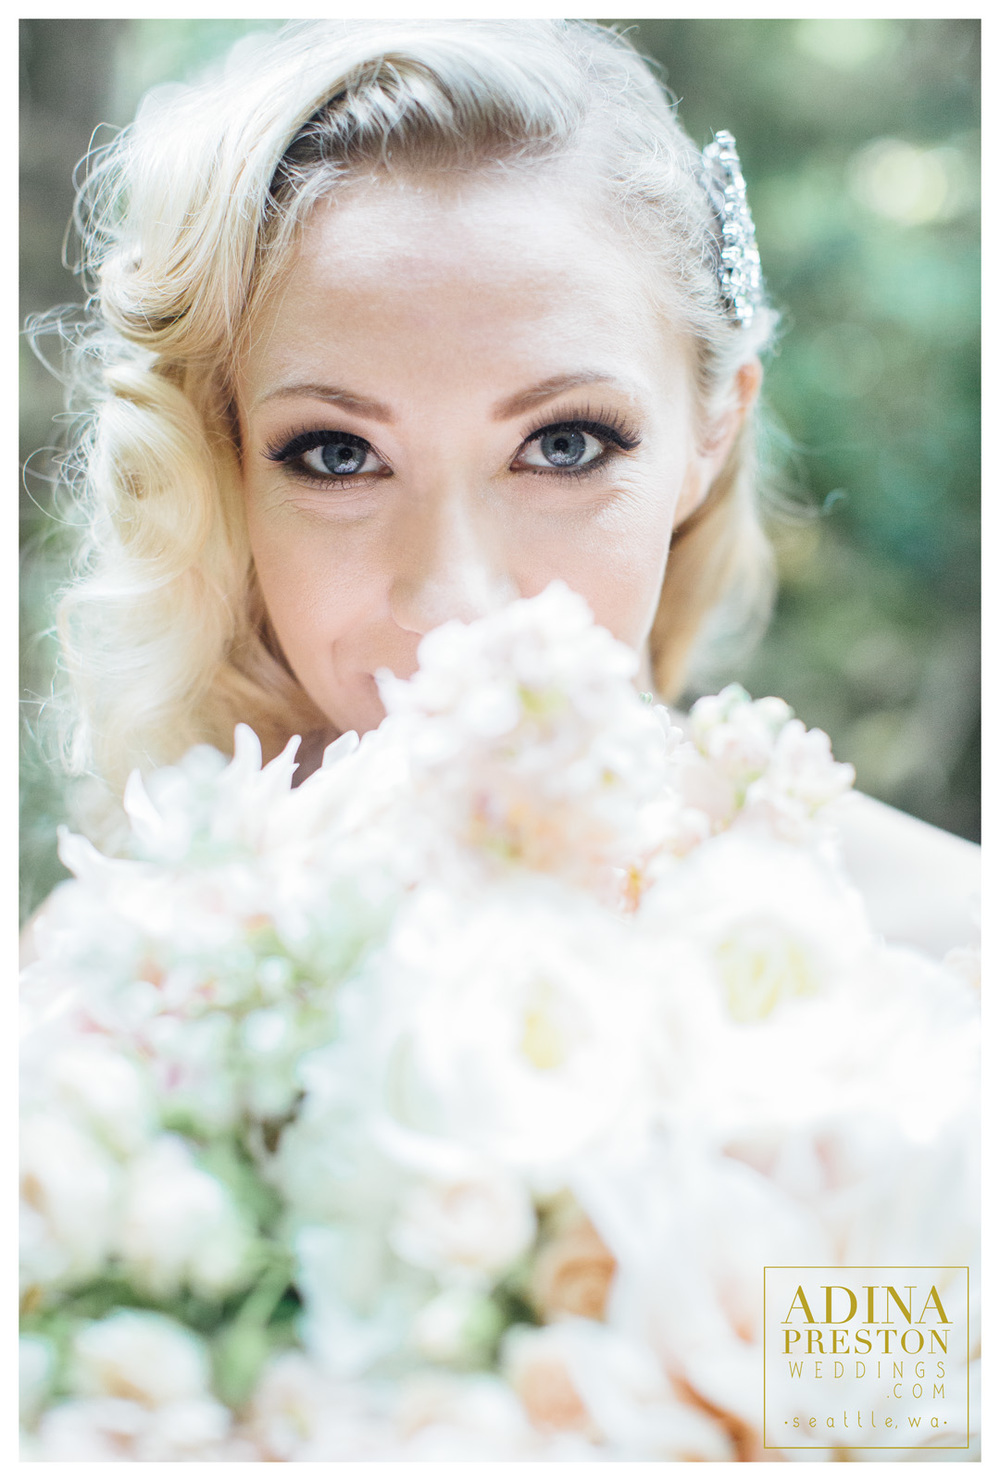 Courtney2_Adina+Preston+Weddings_Seattle+Weddings_Seattle+Wedding+Photographer.JPG